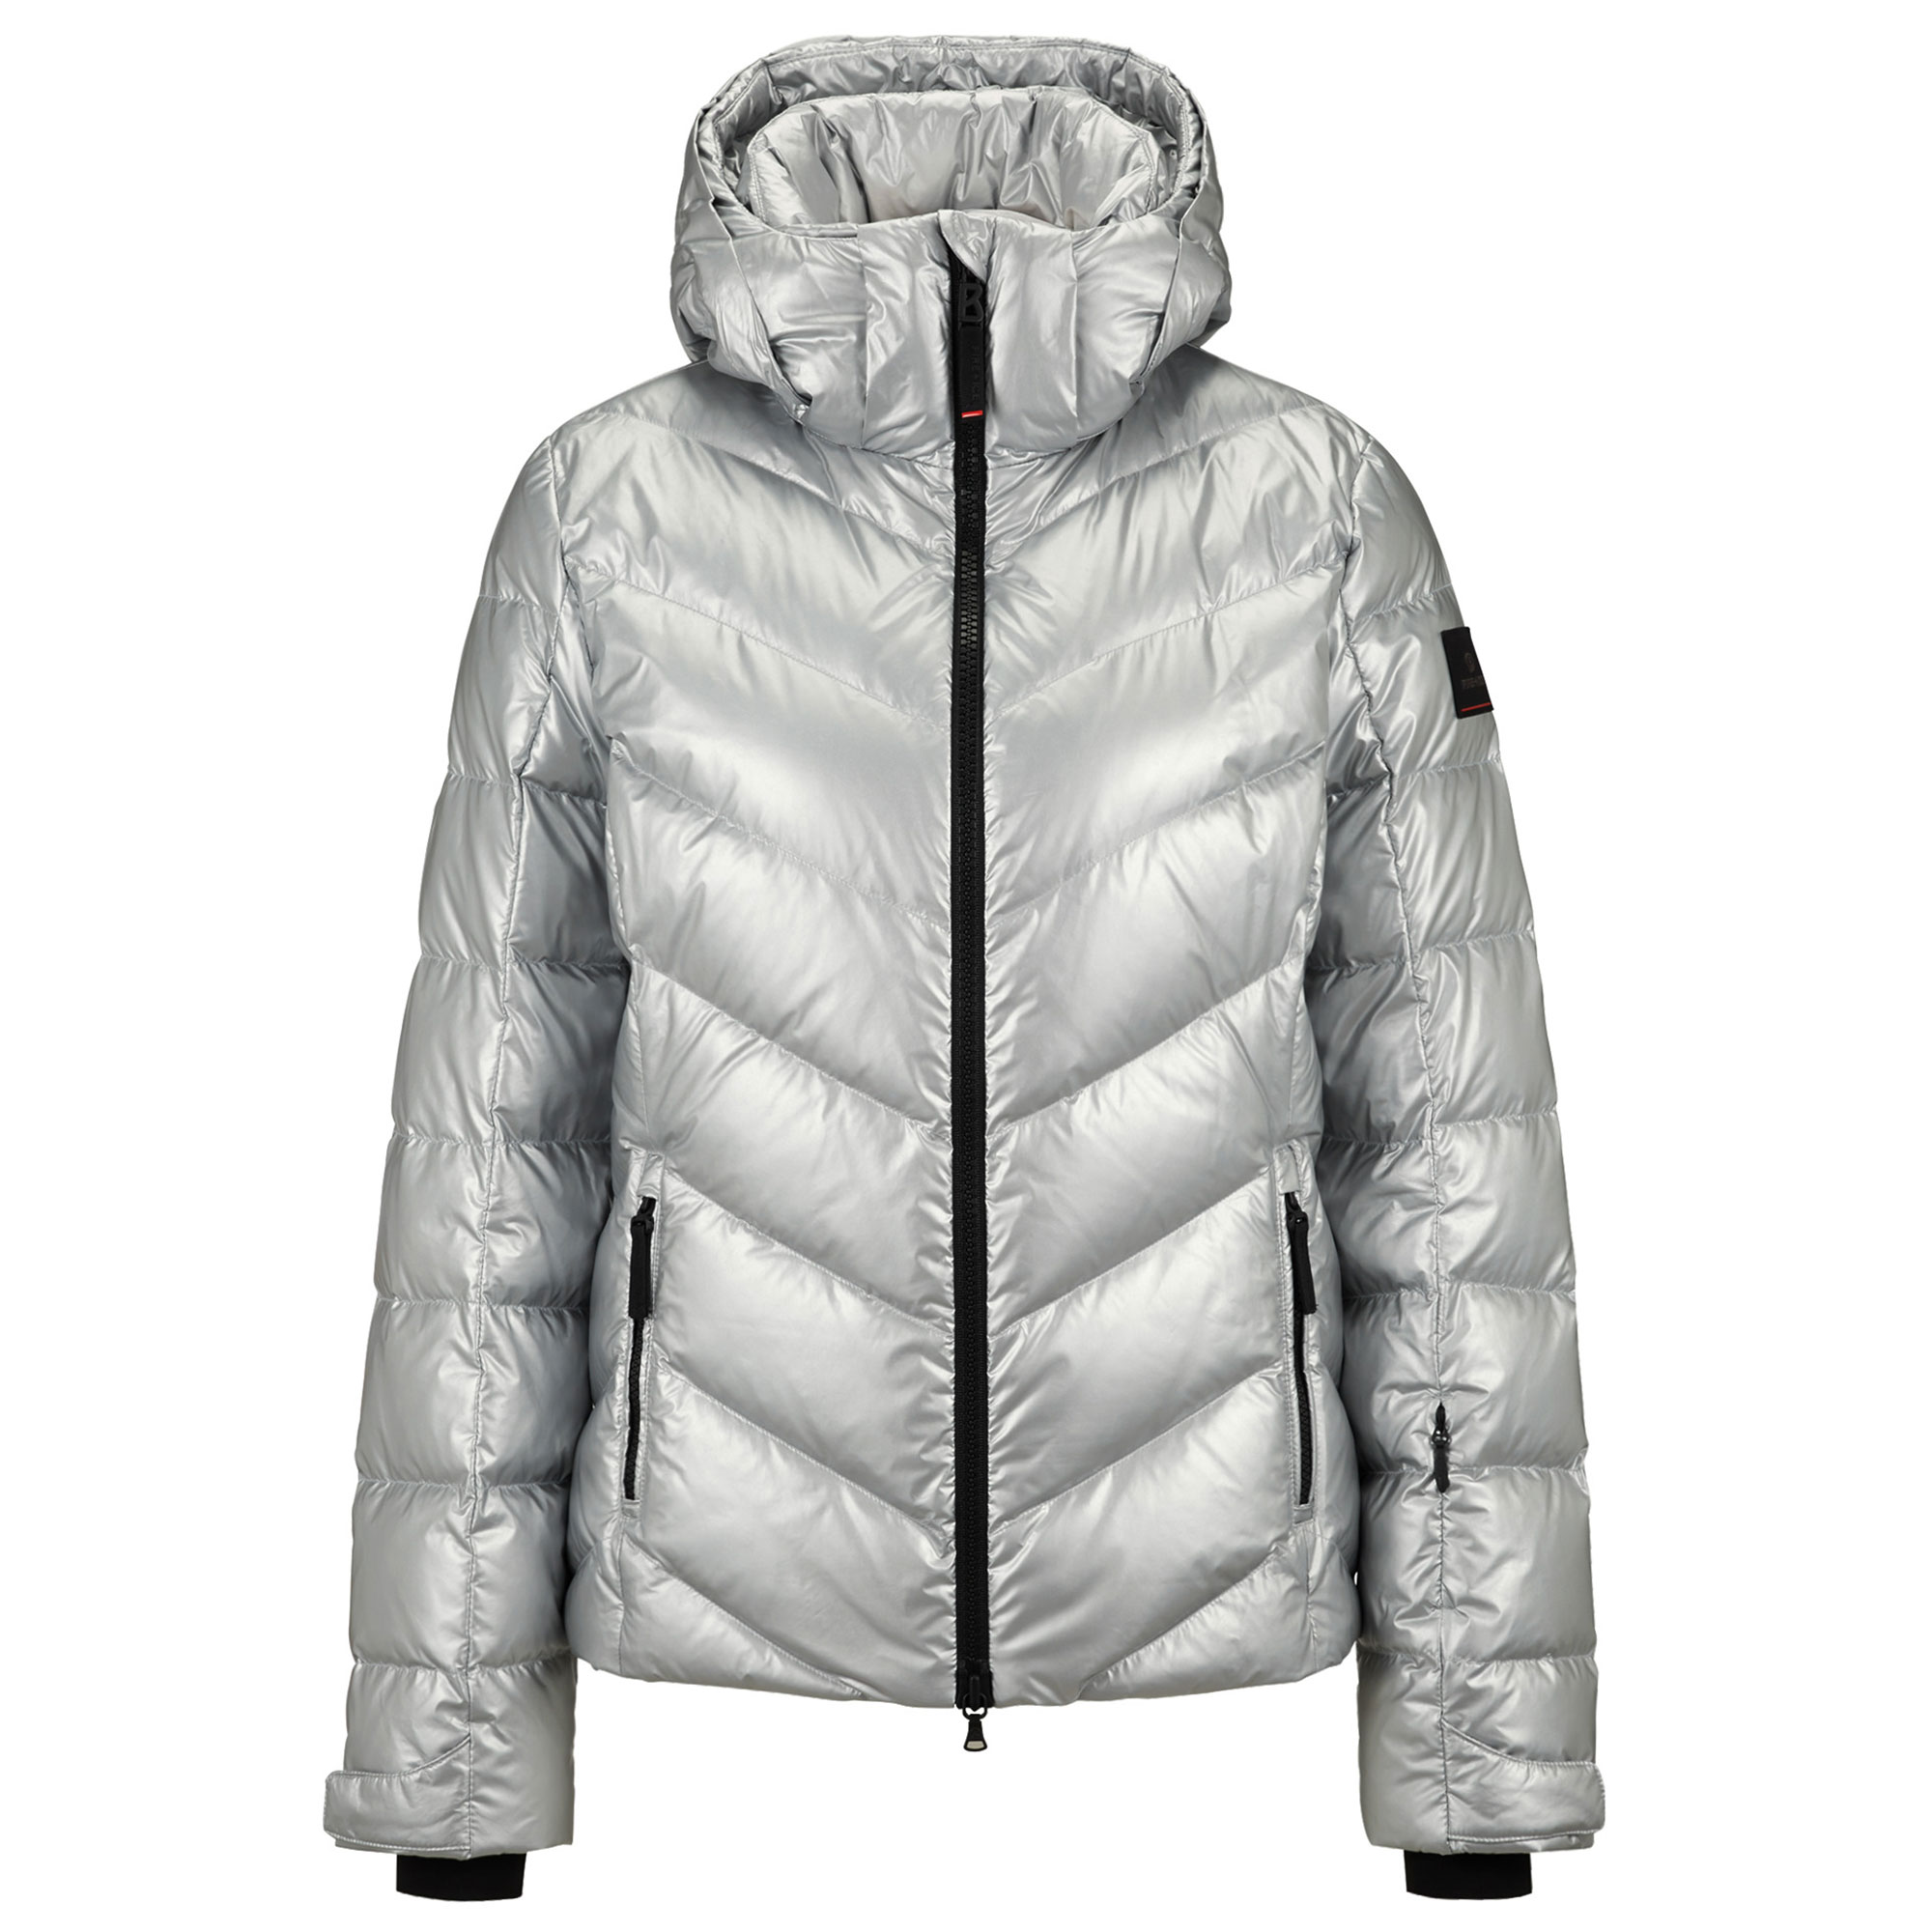 speical offer best value latest fashion Bogner Fire + Ice Women's Sassy Down Jacket